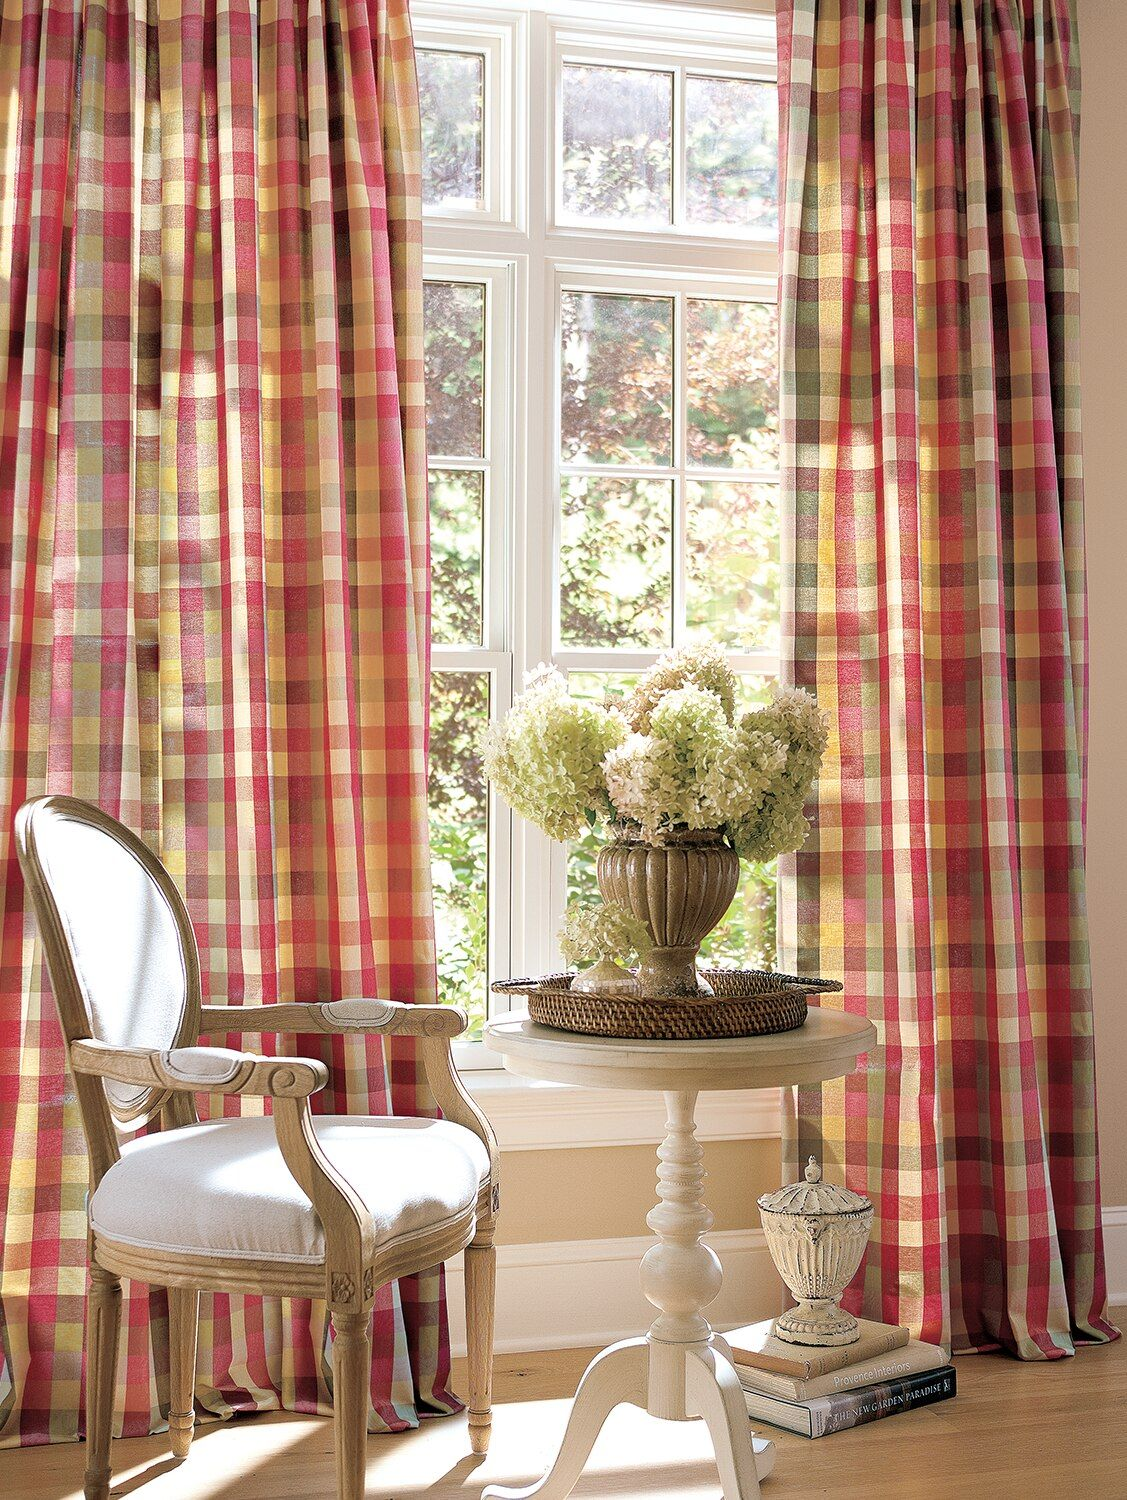 Moire Plaid Rod Pocket Curtains In 2021 Country Living Room French Country Living Room French Living Rooms